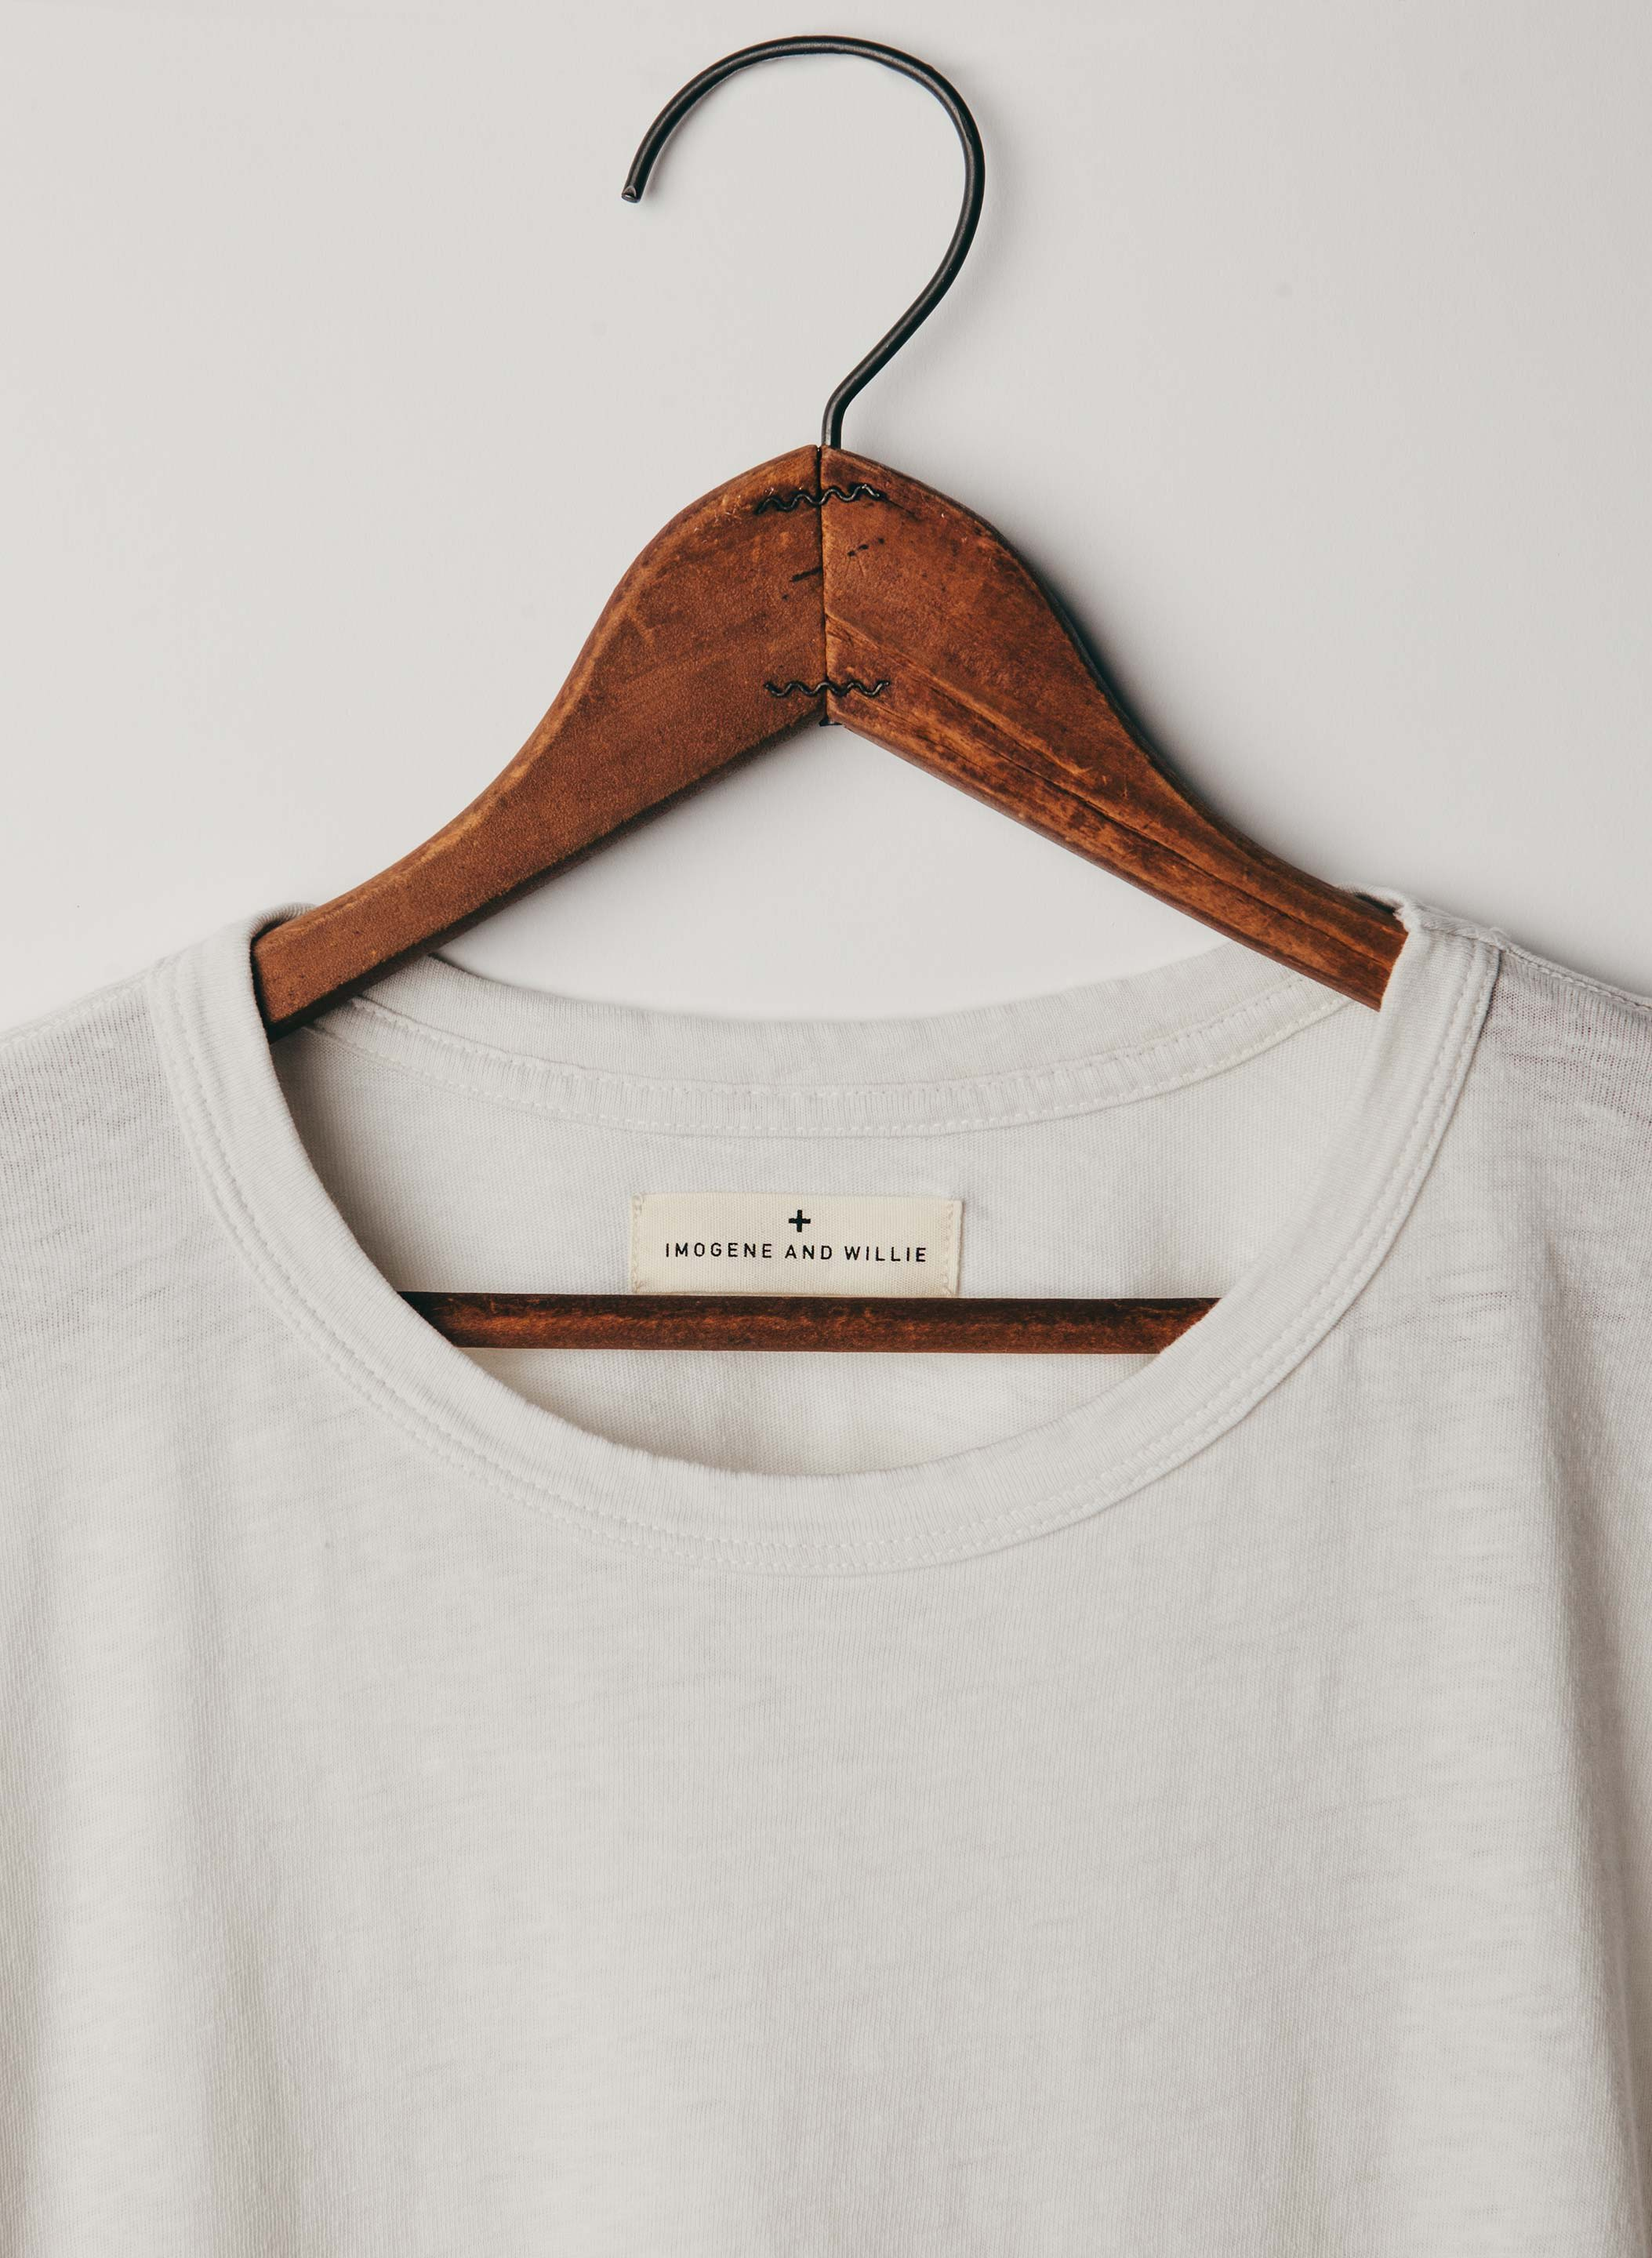 imogene + willie - the drop tee